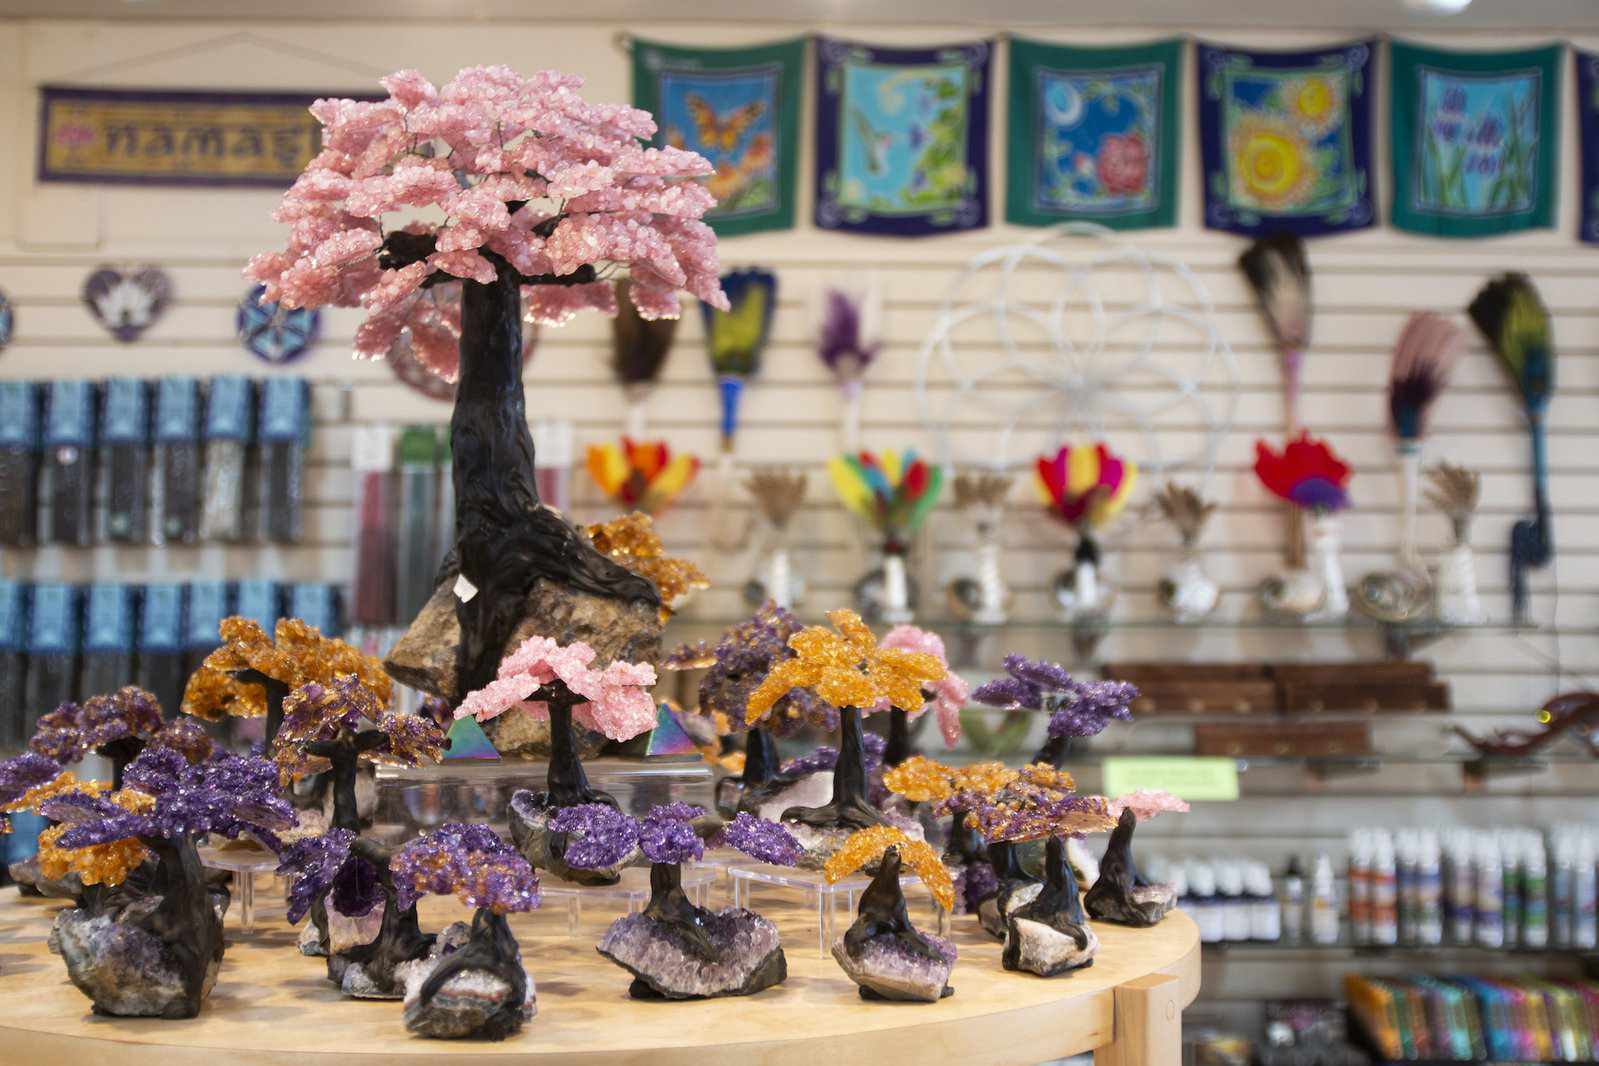 Display table with crystals of various sizes shaped like colorful flowering trees